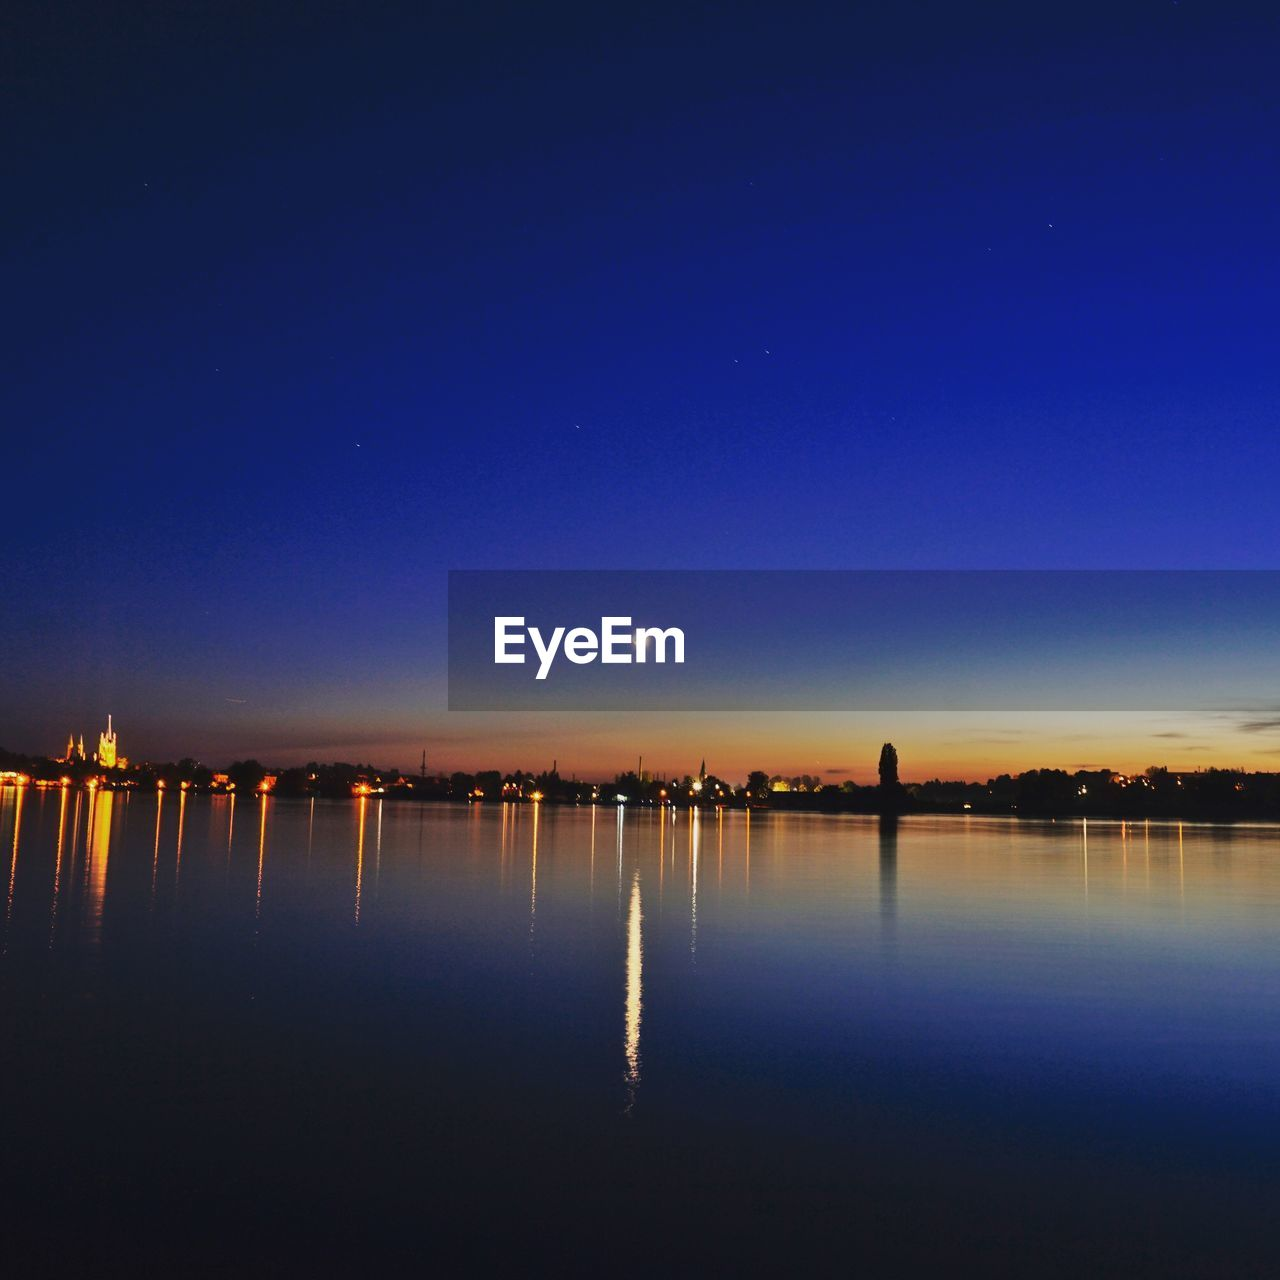 sky, water, reflection, scenics - nature, blue, beauty in nature, nature, no people, copy space, waterfront, night, illuminated, tranquility, tranquil scene, lake, clear sky, moon, outdoors, dusk